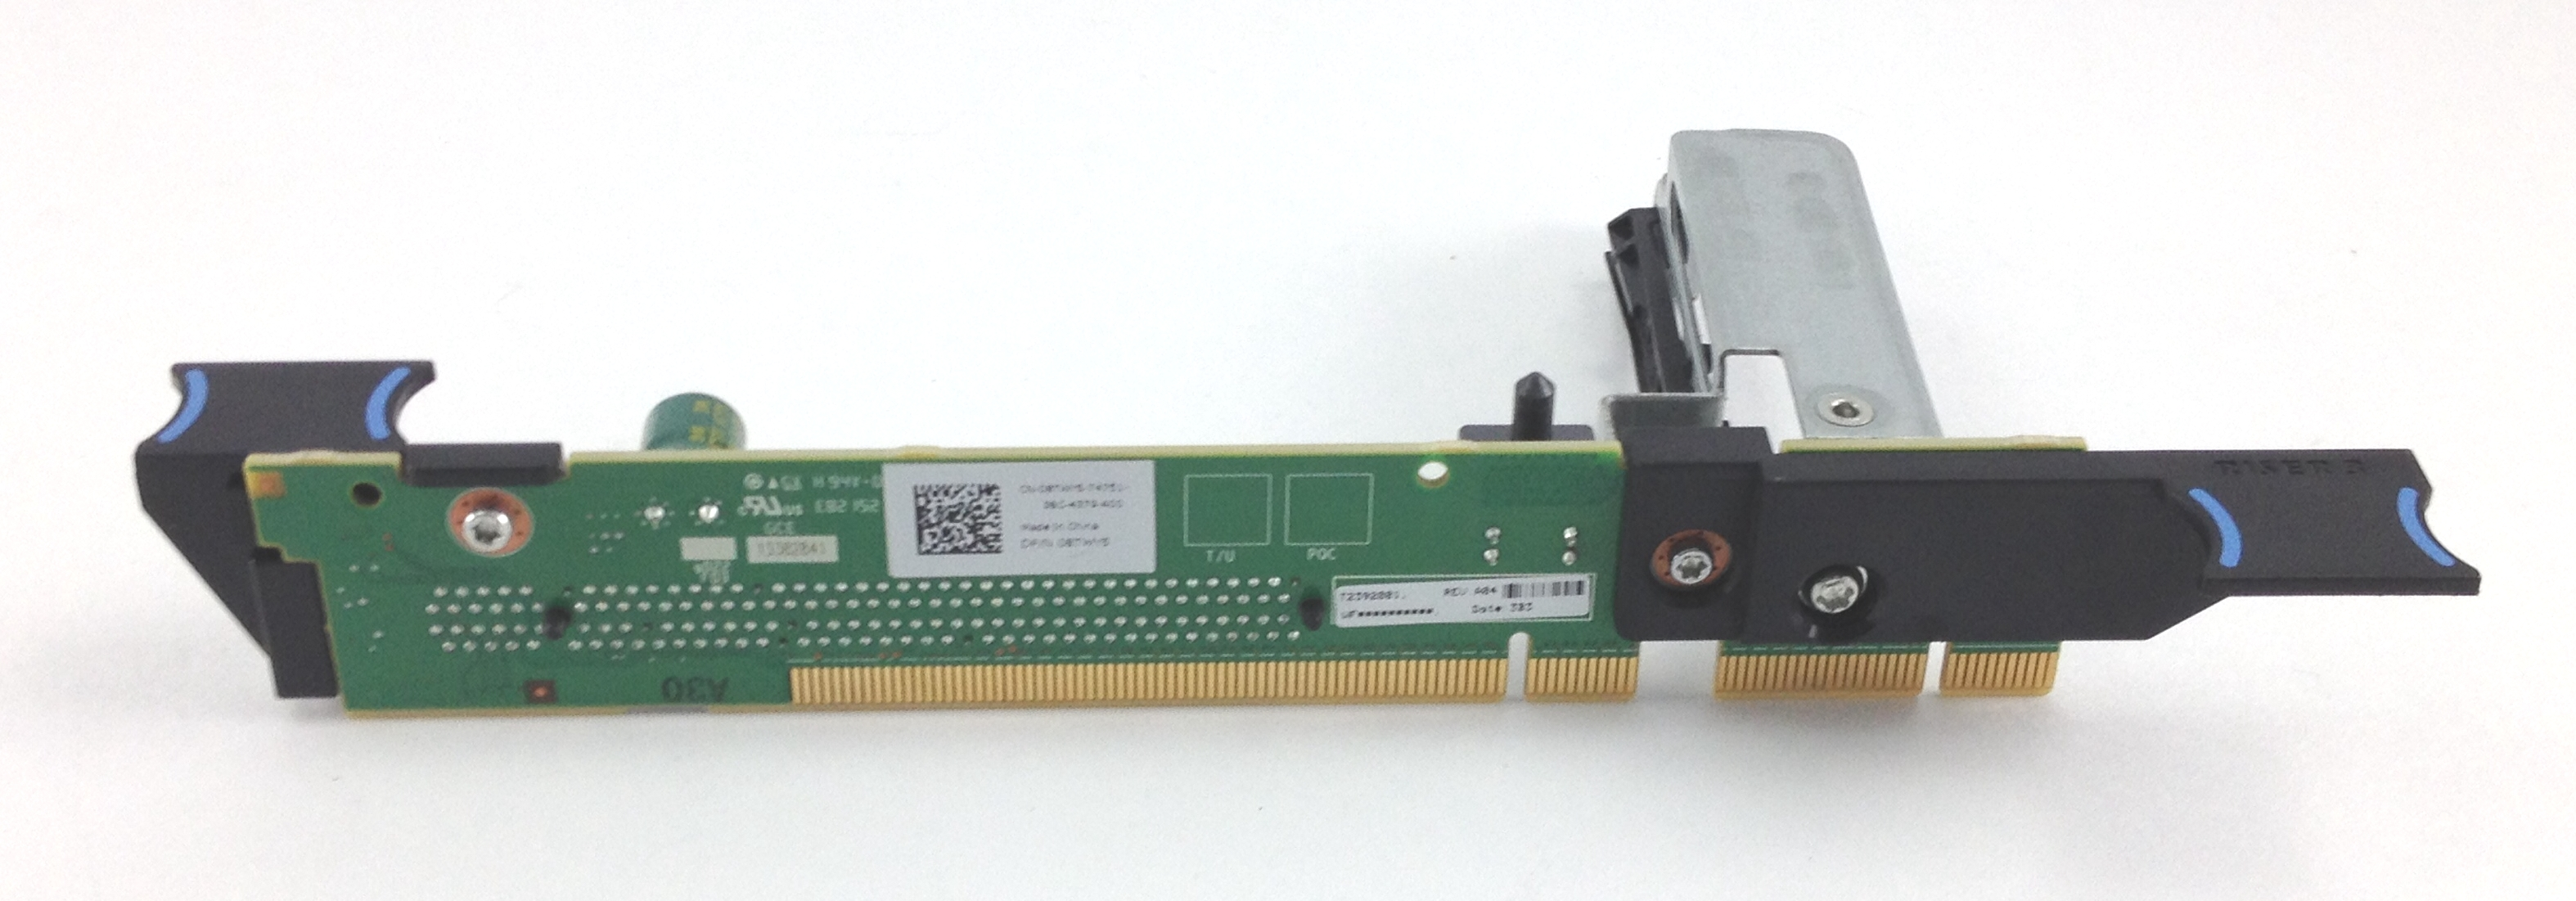 Dell PowerEdge R620 Expansion Riser Board/Card Assembly With Mount Bracket (8TWY5)